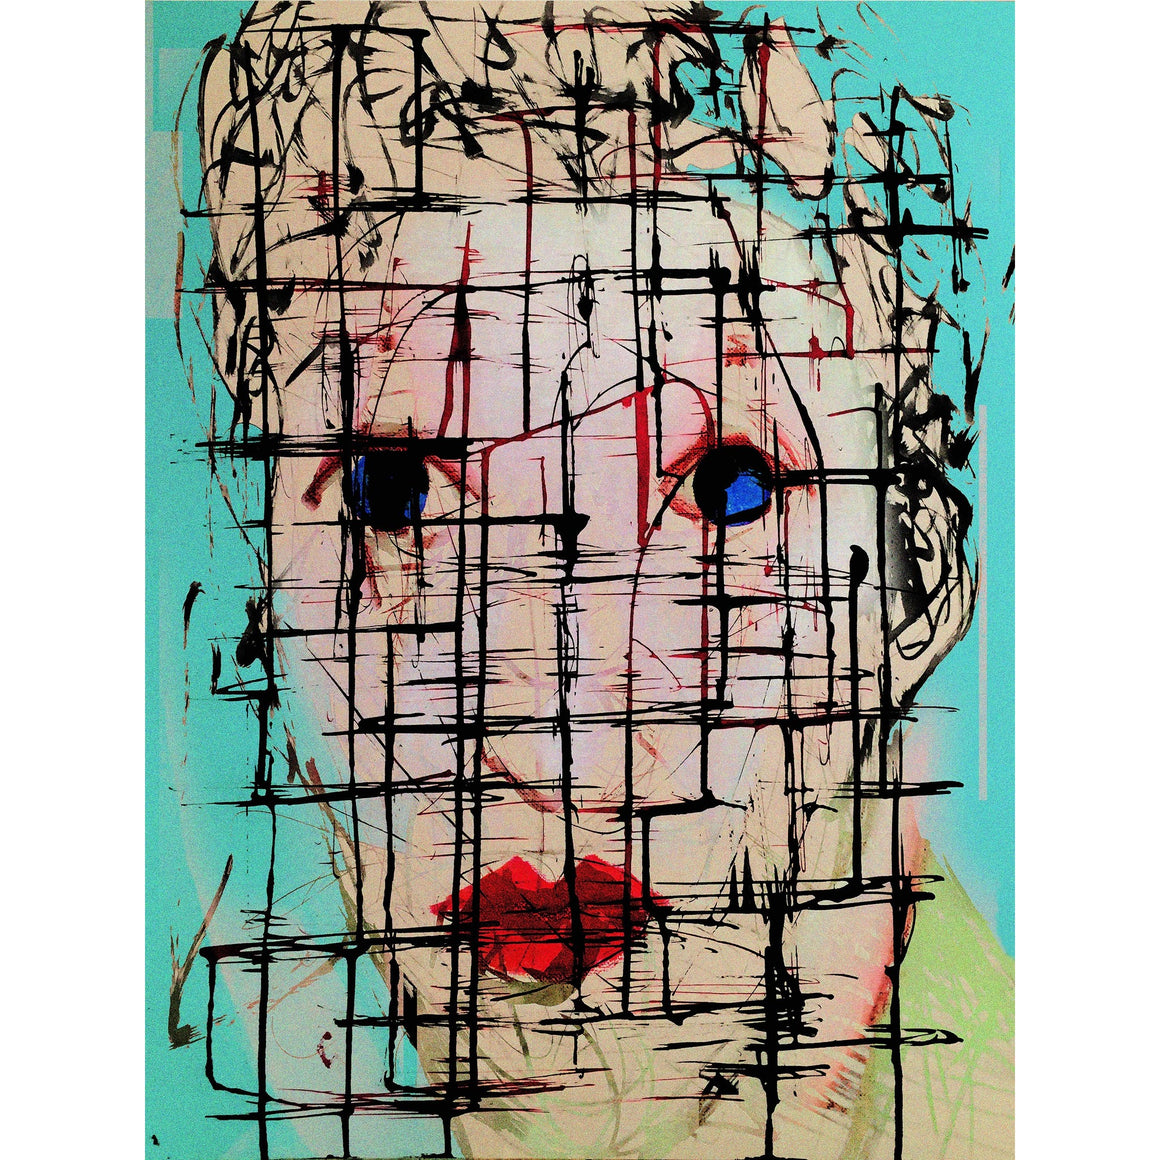 "'Face 2' Digital Collage Limited Edition Fine Art Painting 40"" x 30"""